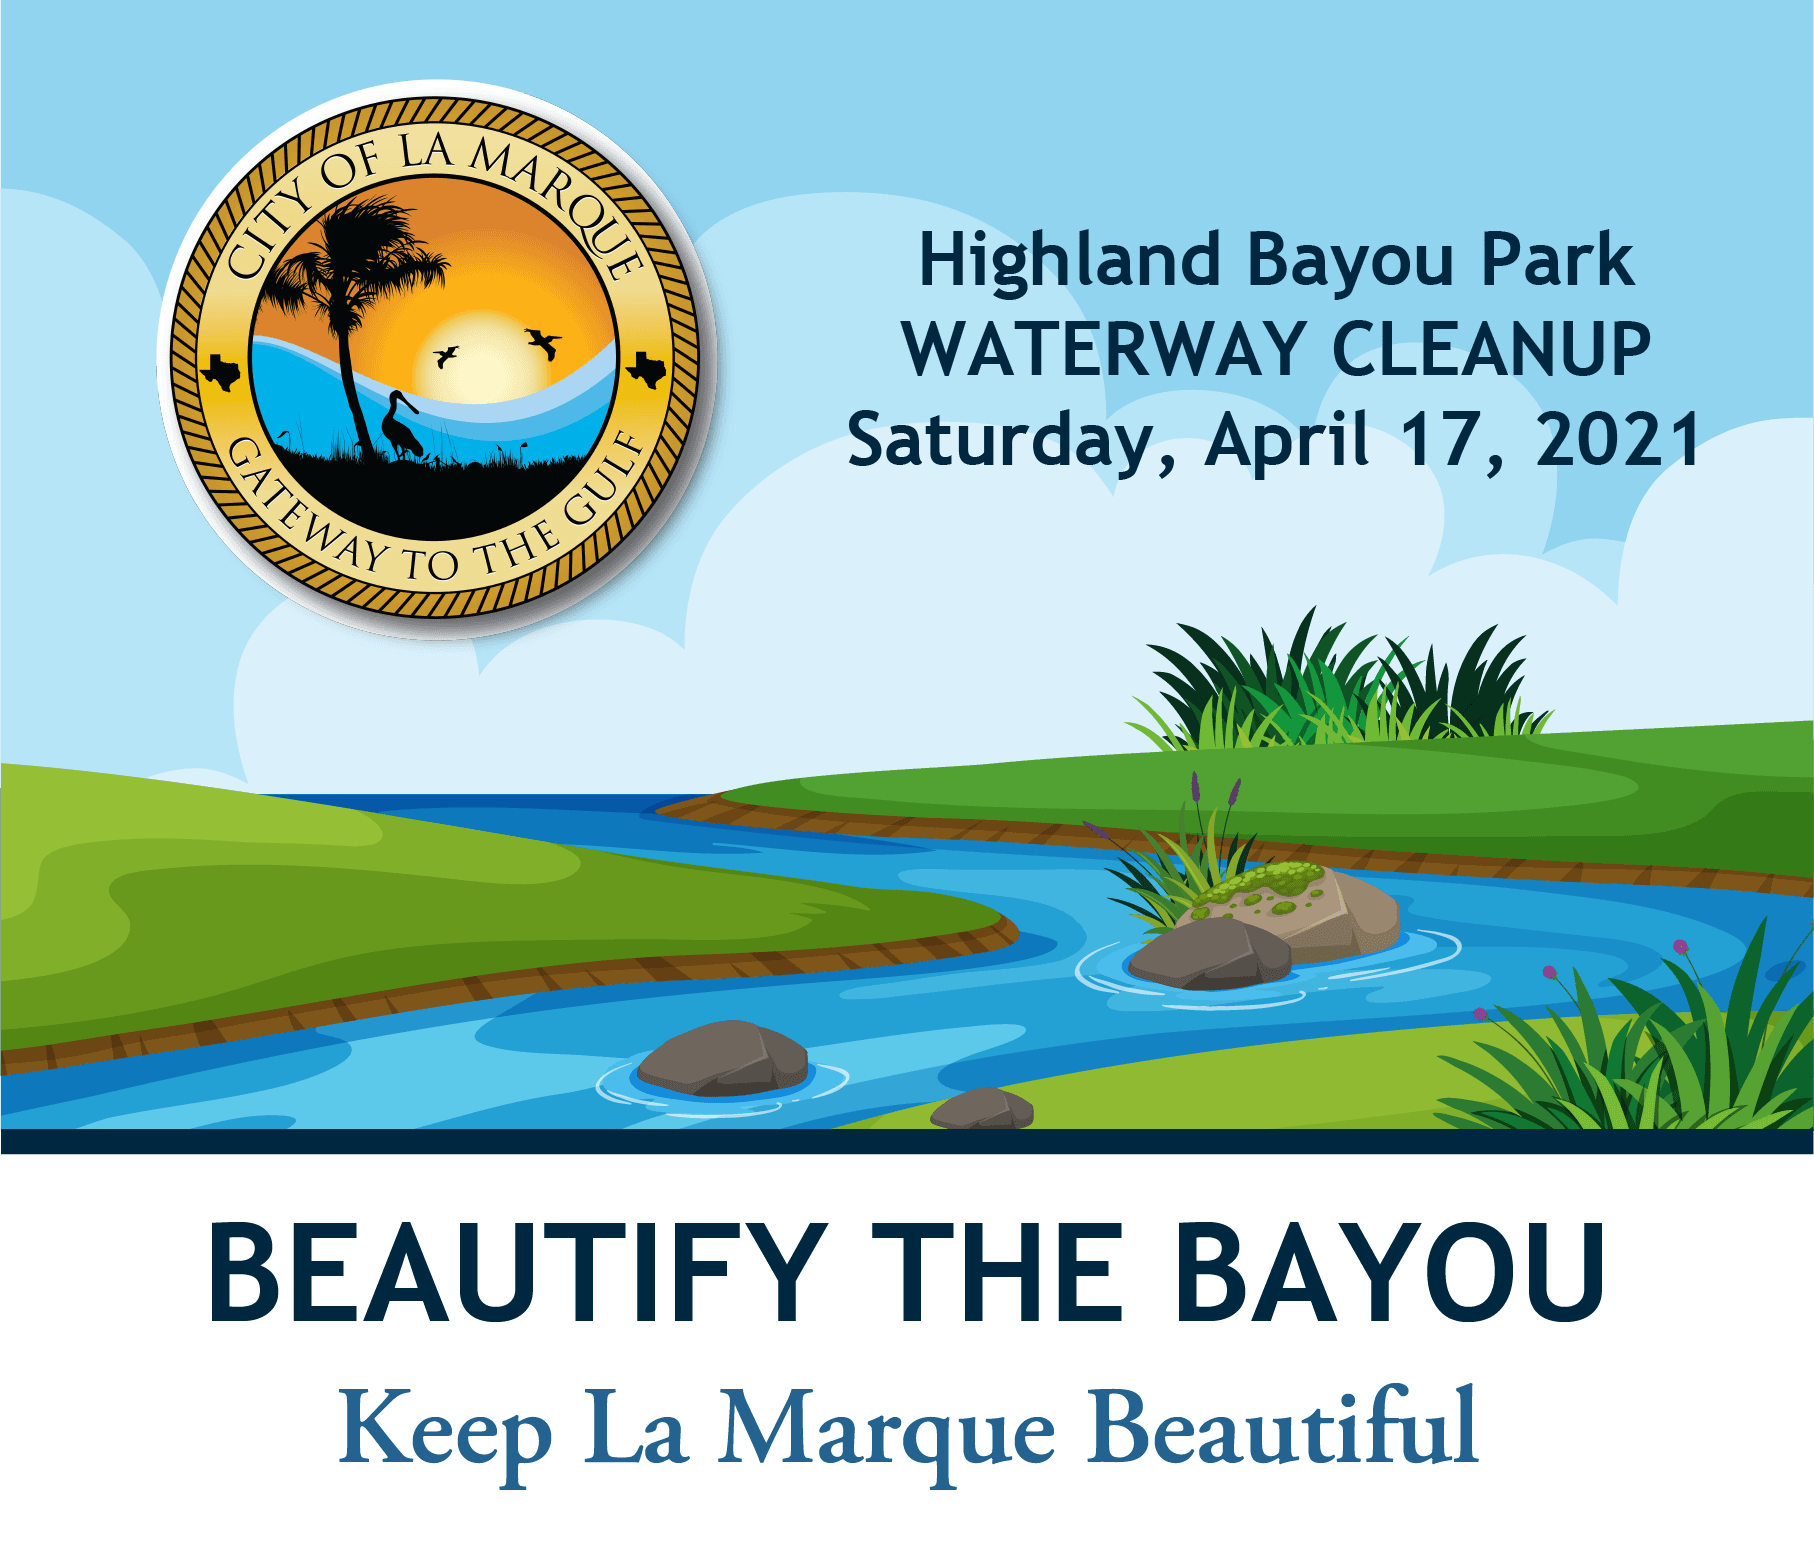 Beautify the Bayou 2021